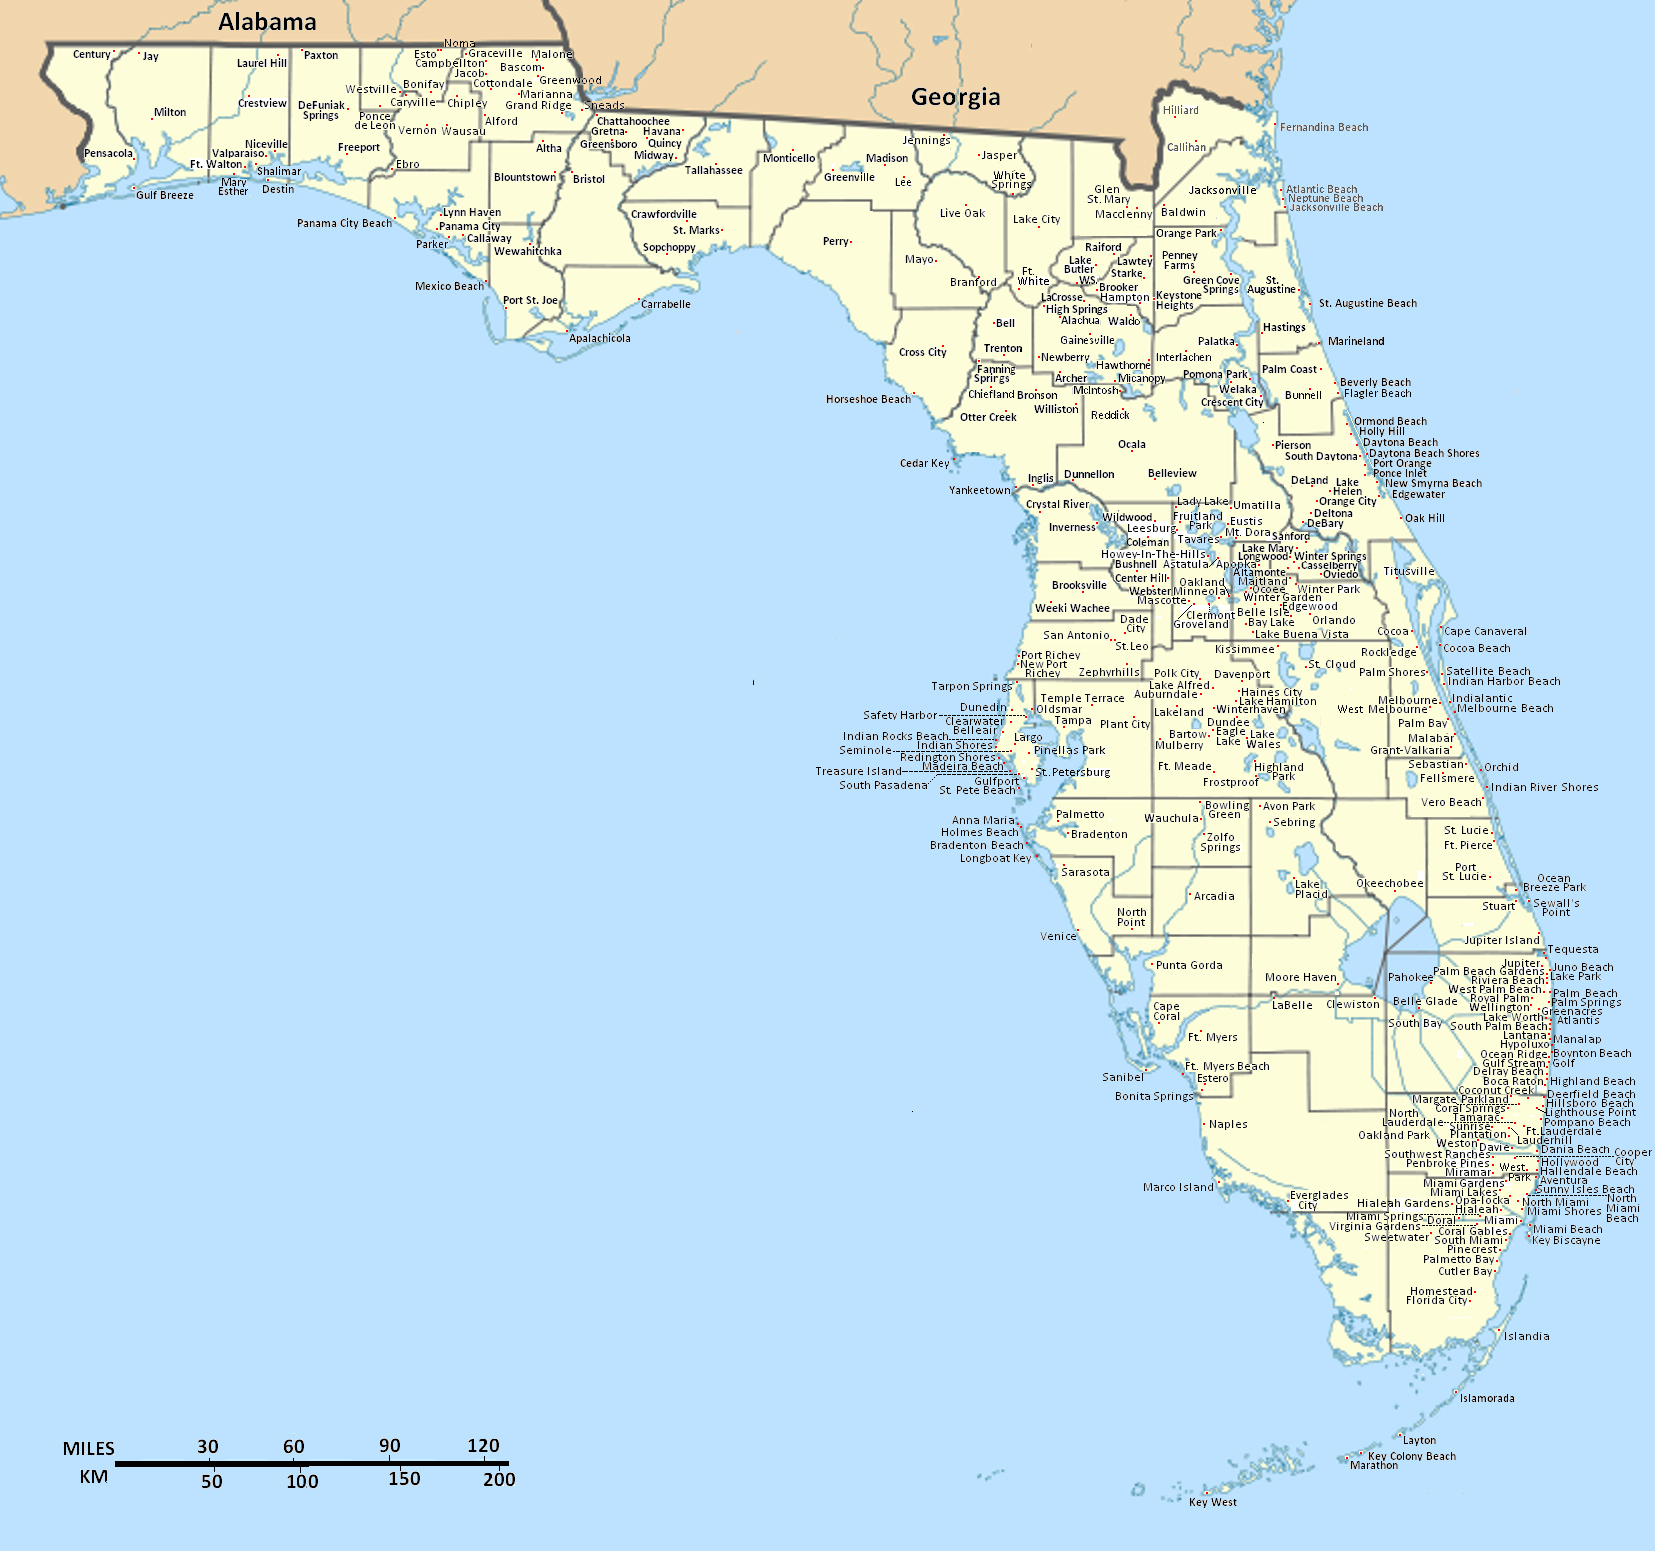 Detailed Florida State Map With Cities. Florida State Detailed Map - Where Is Panama City Florida On The Map